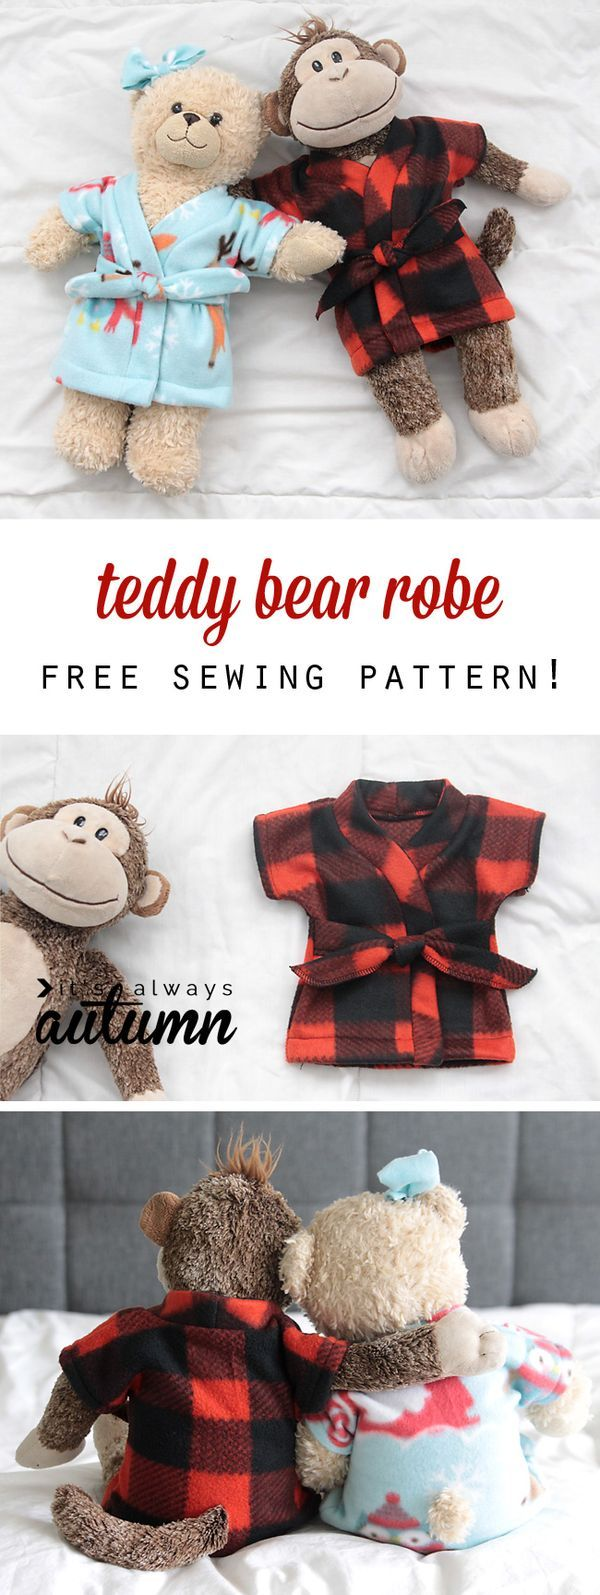 stuffed animal & teddy bear robe {free sewing pattern | Rund ums ...